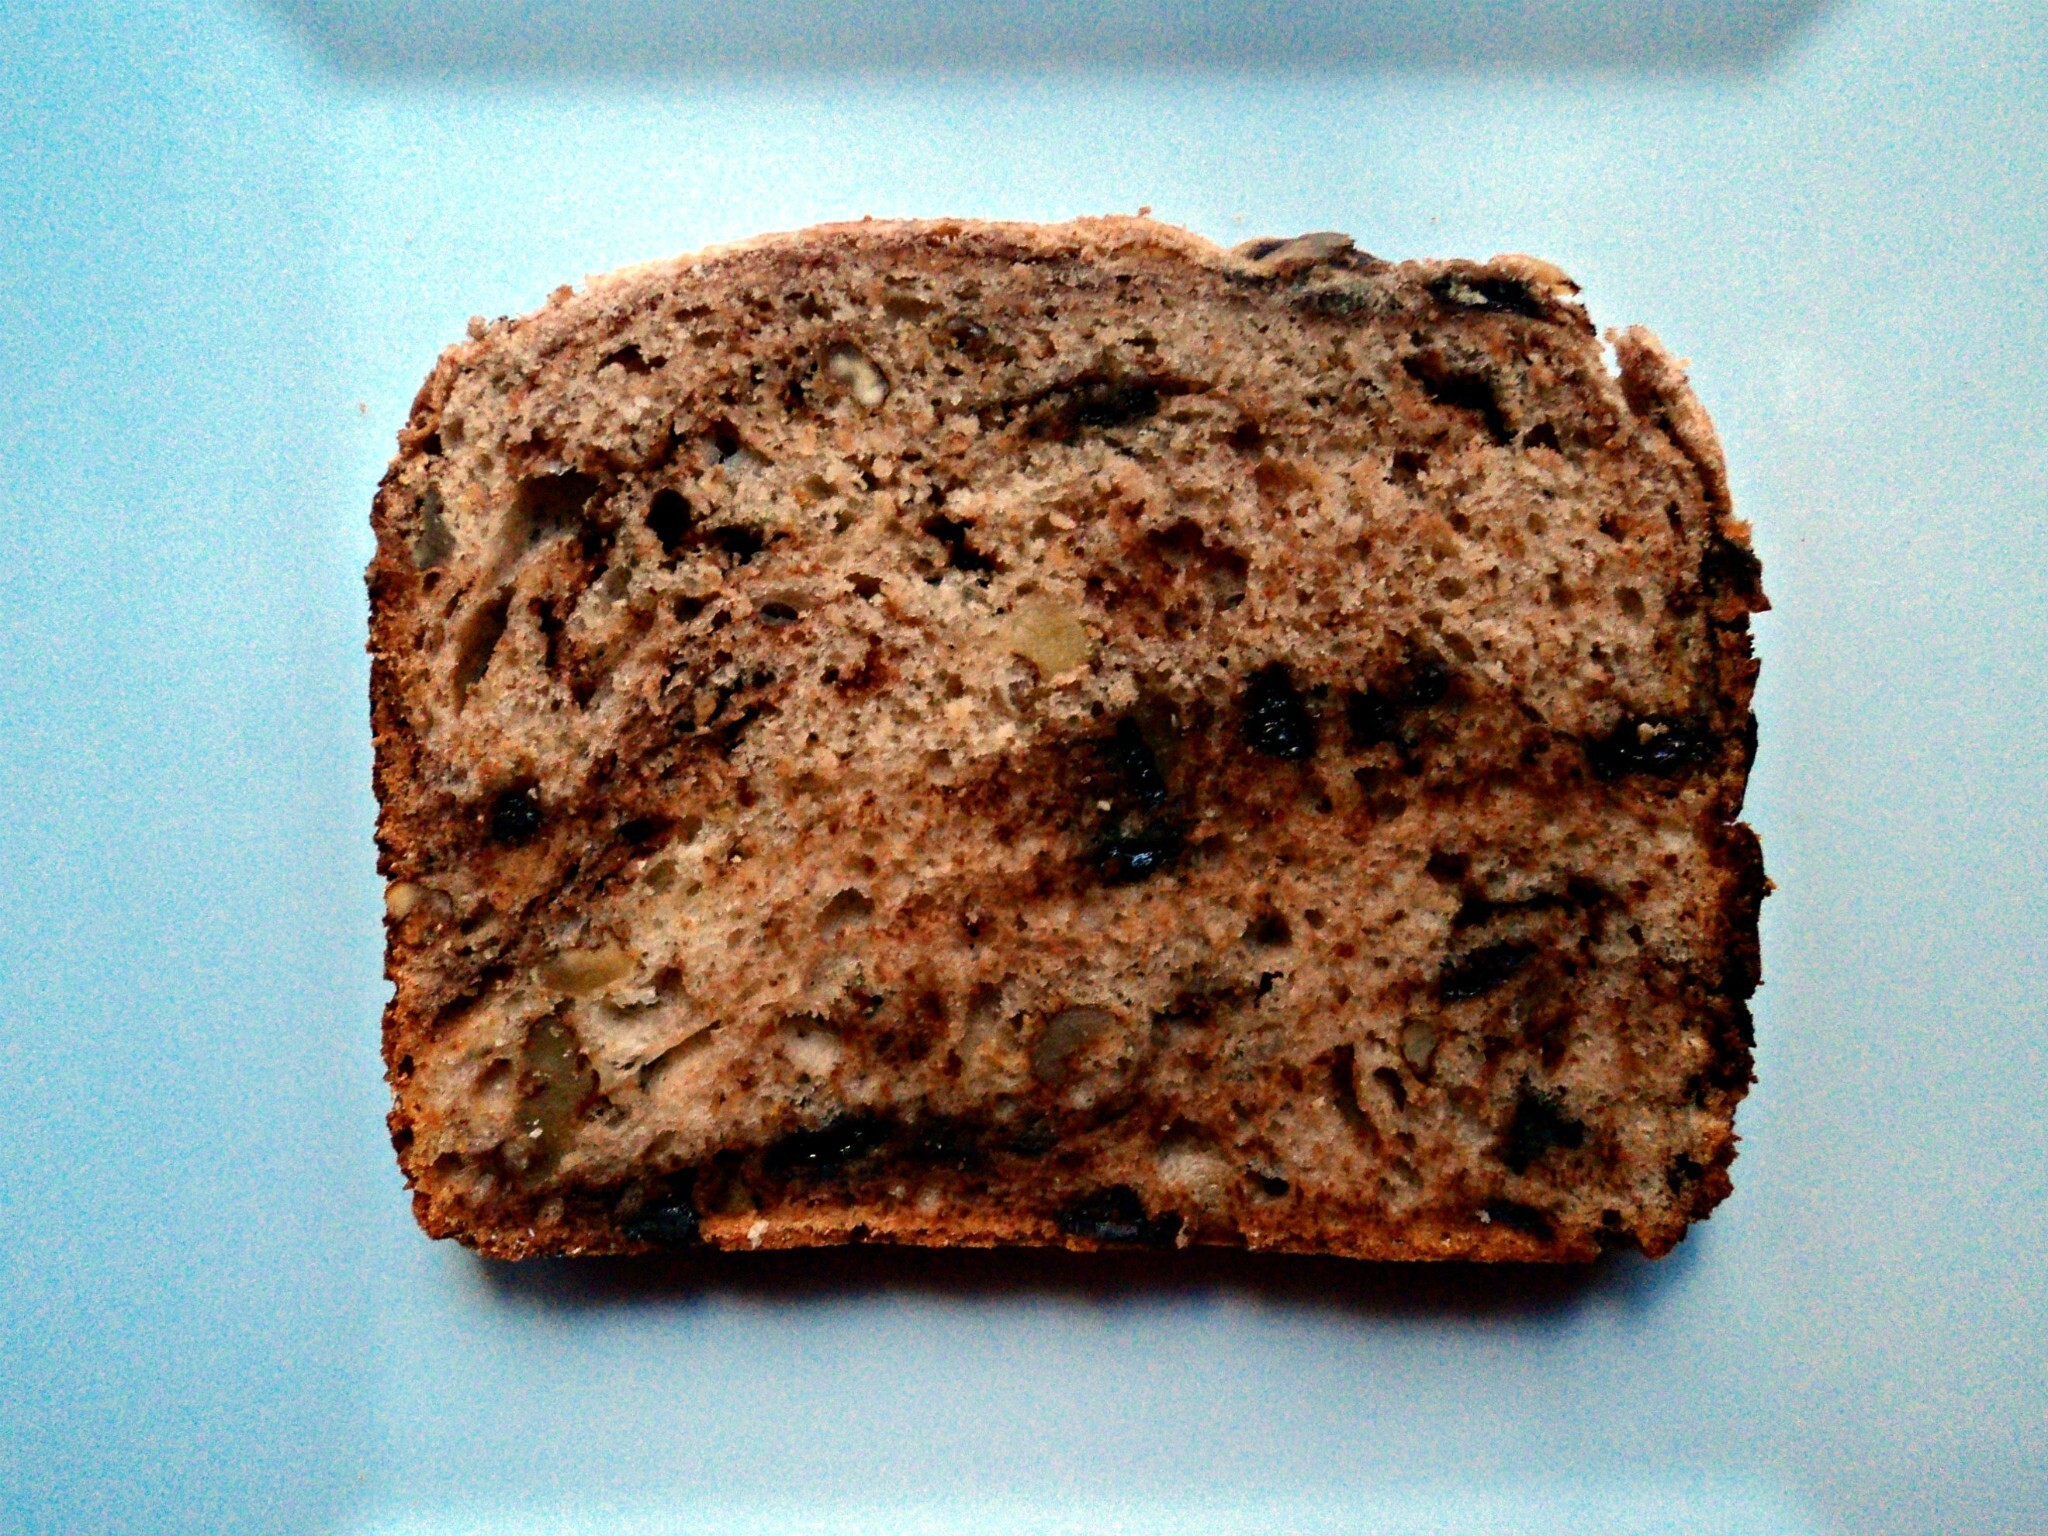 Pan de leche con nueces, miel y chocolate